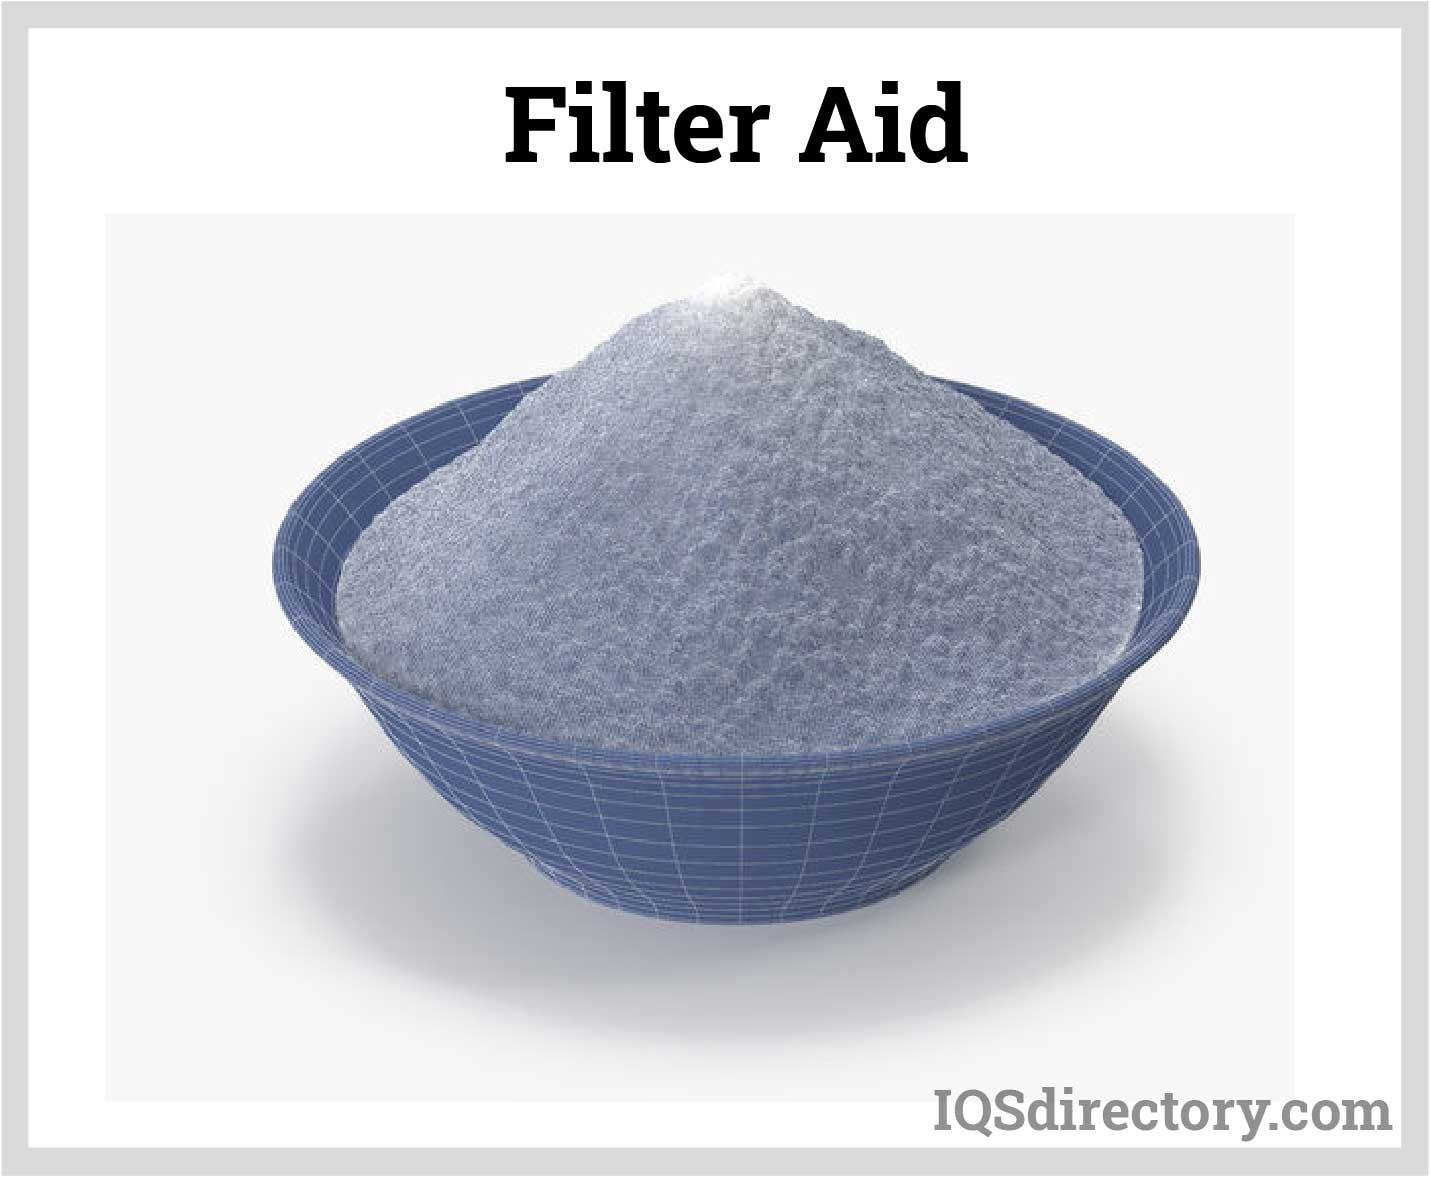 Filter Aid